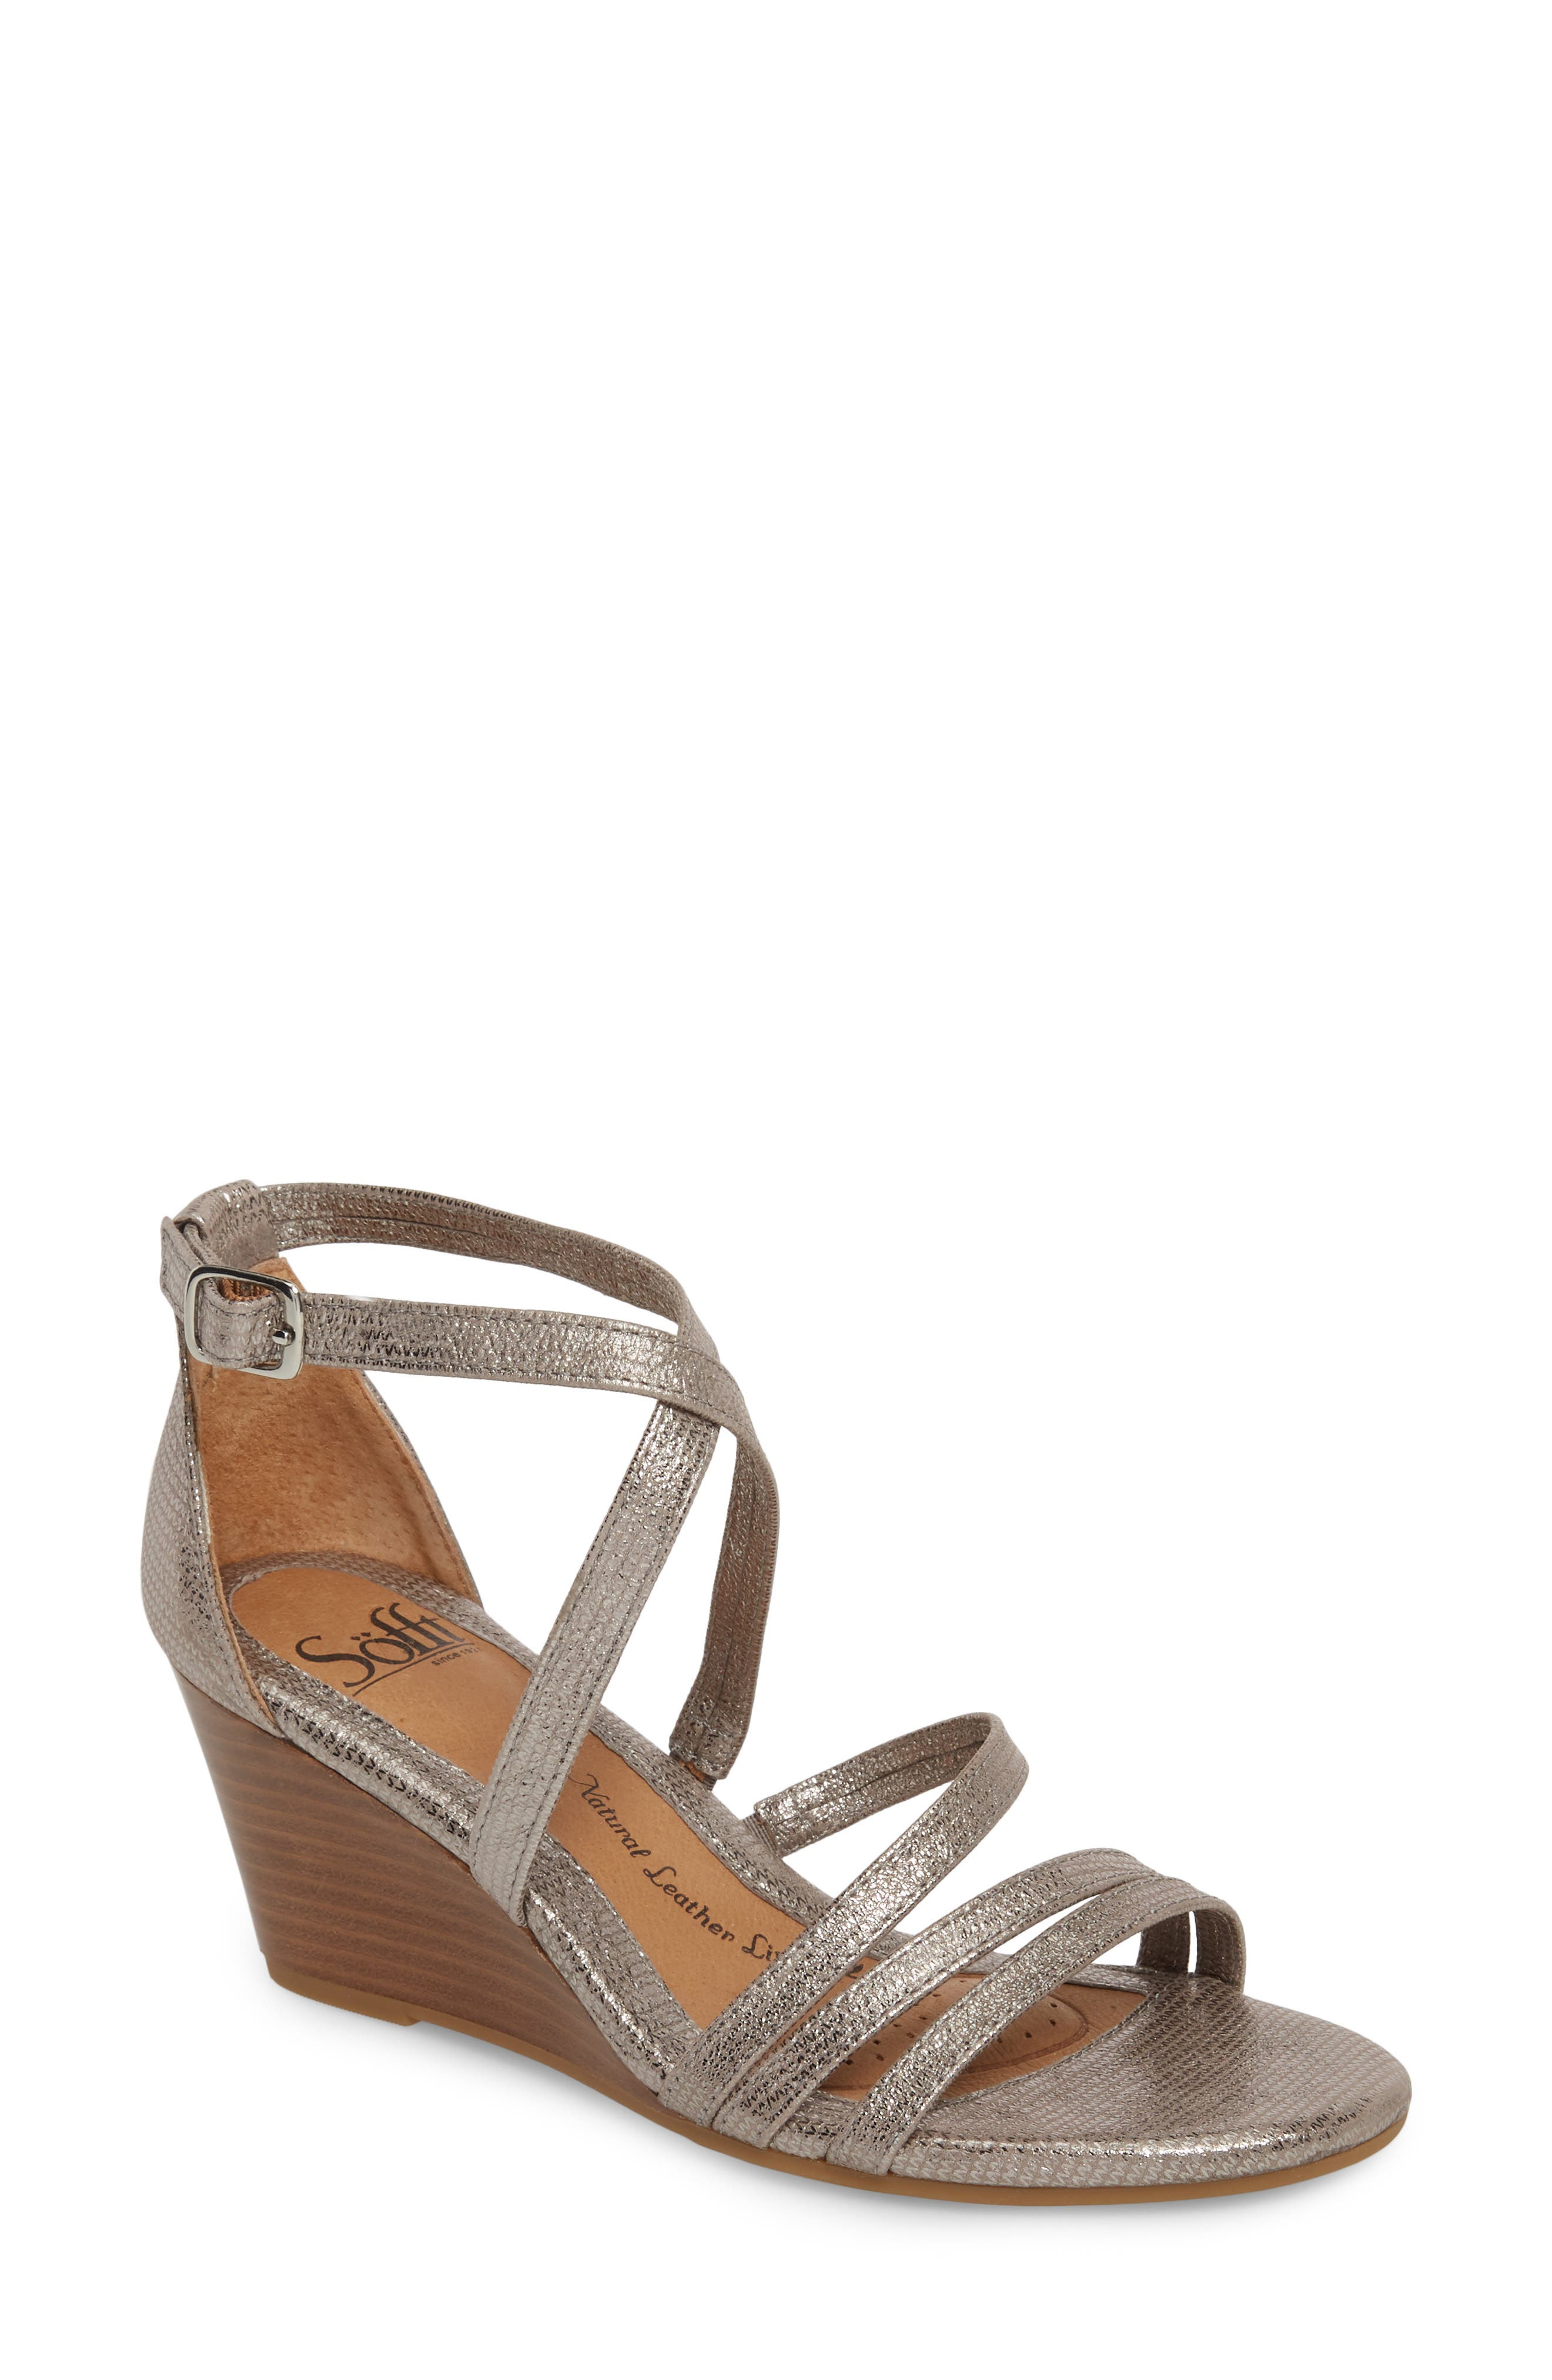 Mecina Wedge Sandal,                         Main,                         color, SILVER METALLIC LEATHER